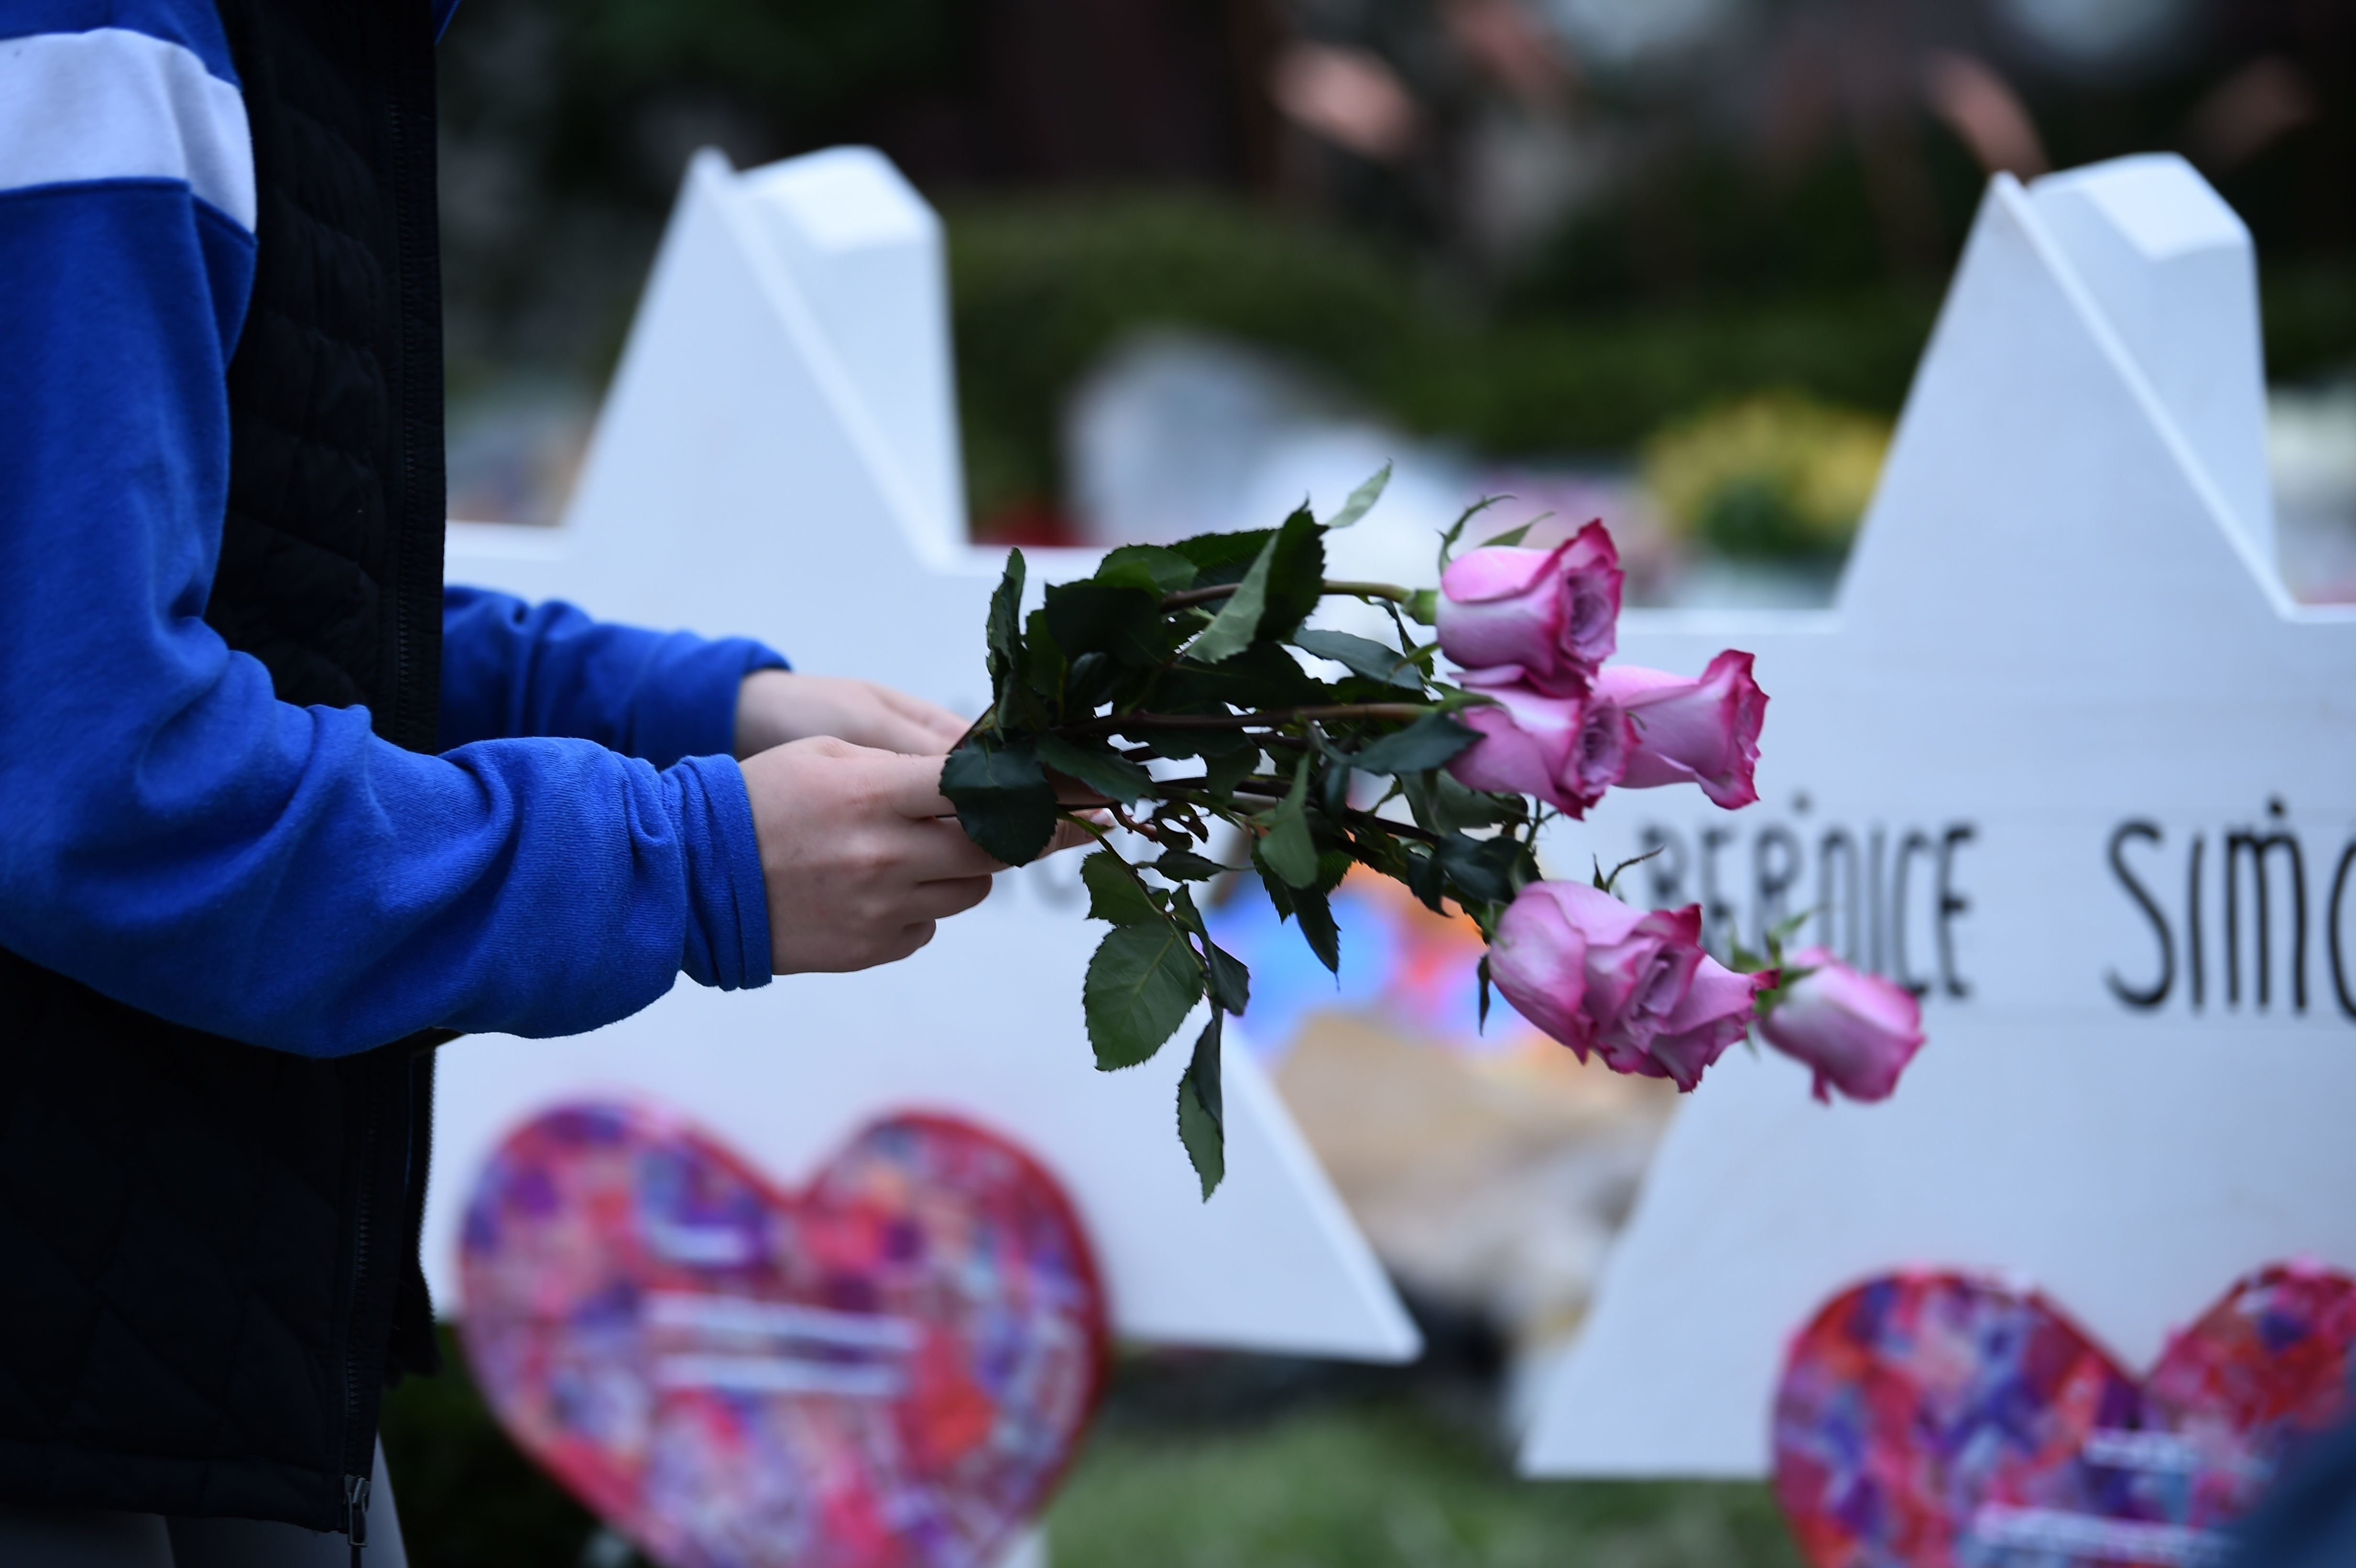 People pay their respects at a memorial outside the Tree of Life synagogue after a shooting there left 11 people dead in the Squirrel Hill neighborhood of Pittsburgh, Pennsylvania on October 29, 2018. - Mourners held an emotional vigil Sunday for victims of a fatal shooting at a Pittsburgh synagogue, an assault that saw a gunman who said he 'wanted all Jews to die' open fire on a mostly elderly group. Americans had earlier learned the identities of the 11 people killed in the brutal assault at the Tree of Life synagogue, including 97-year-old Rose Mallinger and couple Sylvan and Bernice Simon, both in their 80s.Nine of the victims were 65 or older. (Photo by Brendan SMIALOWSKI / AFP)        (Photo credit should read BRENDAN SMIALOWSKI/AFP/Getty Images)